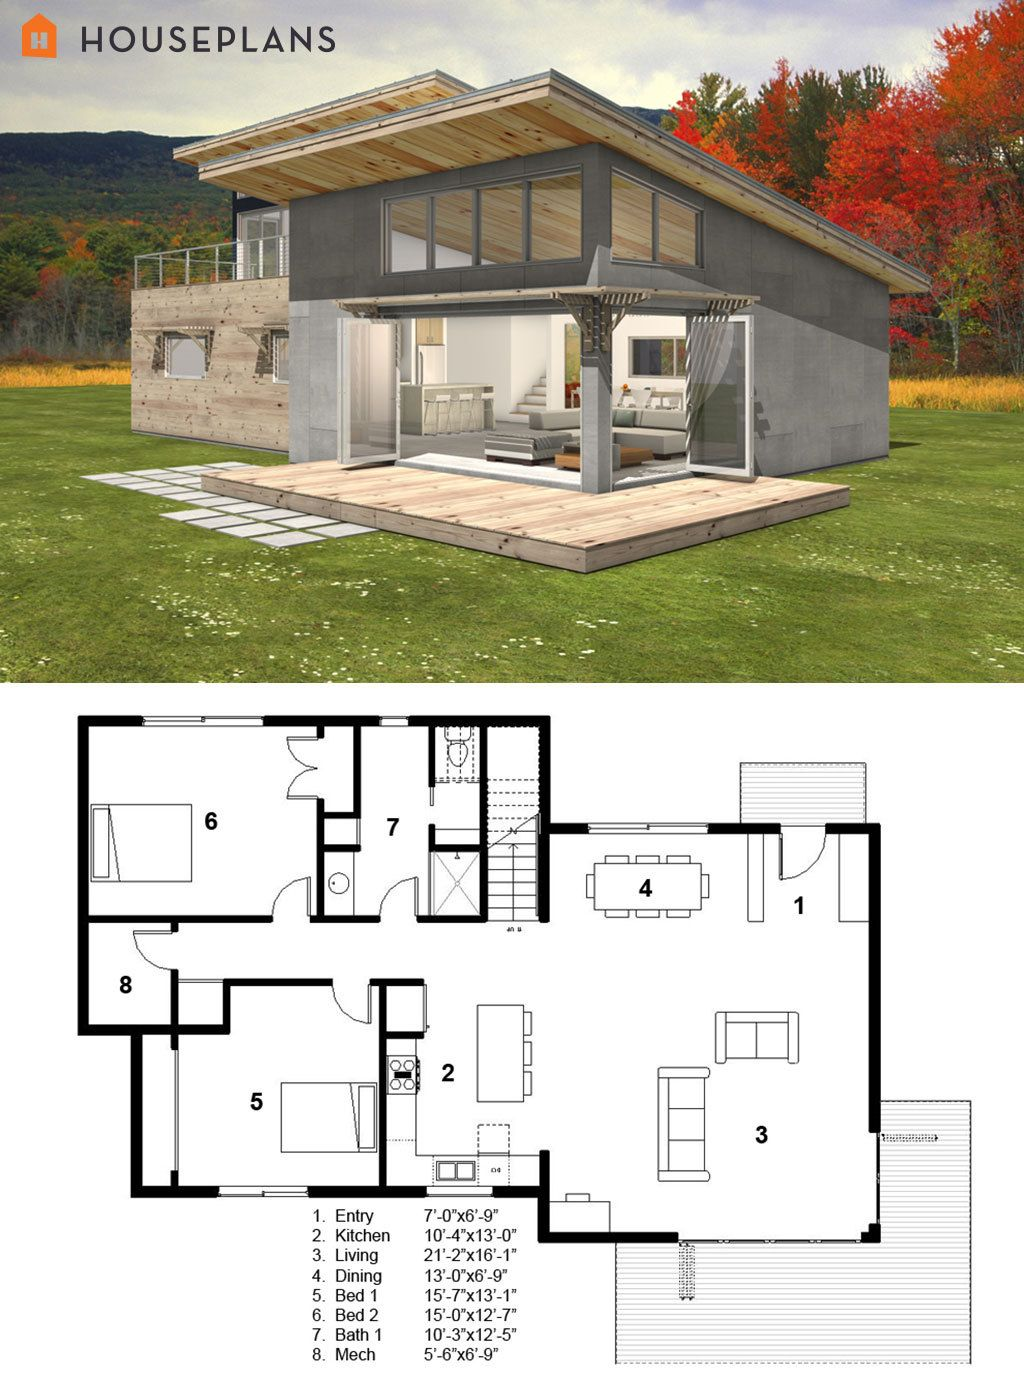 Small modern cabin house plan by freegreen energy for Modern box house design